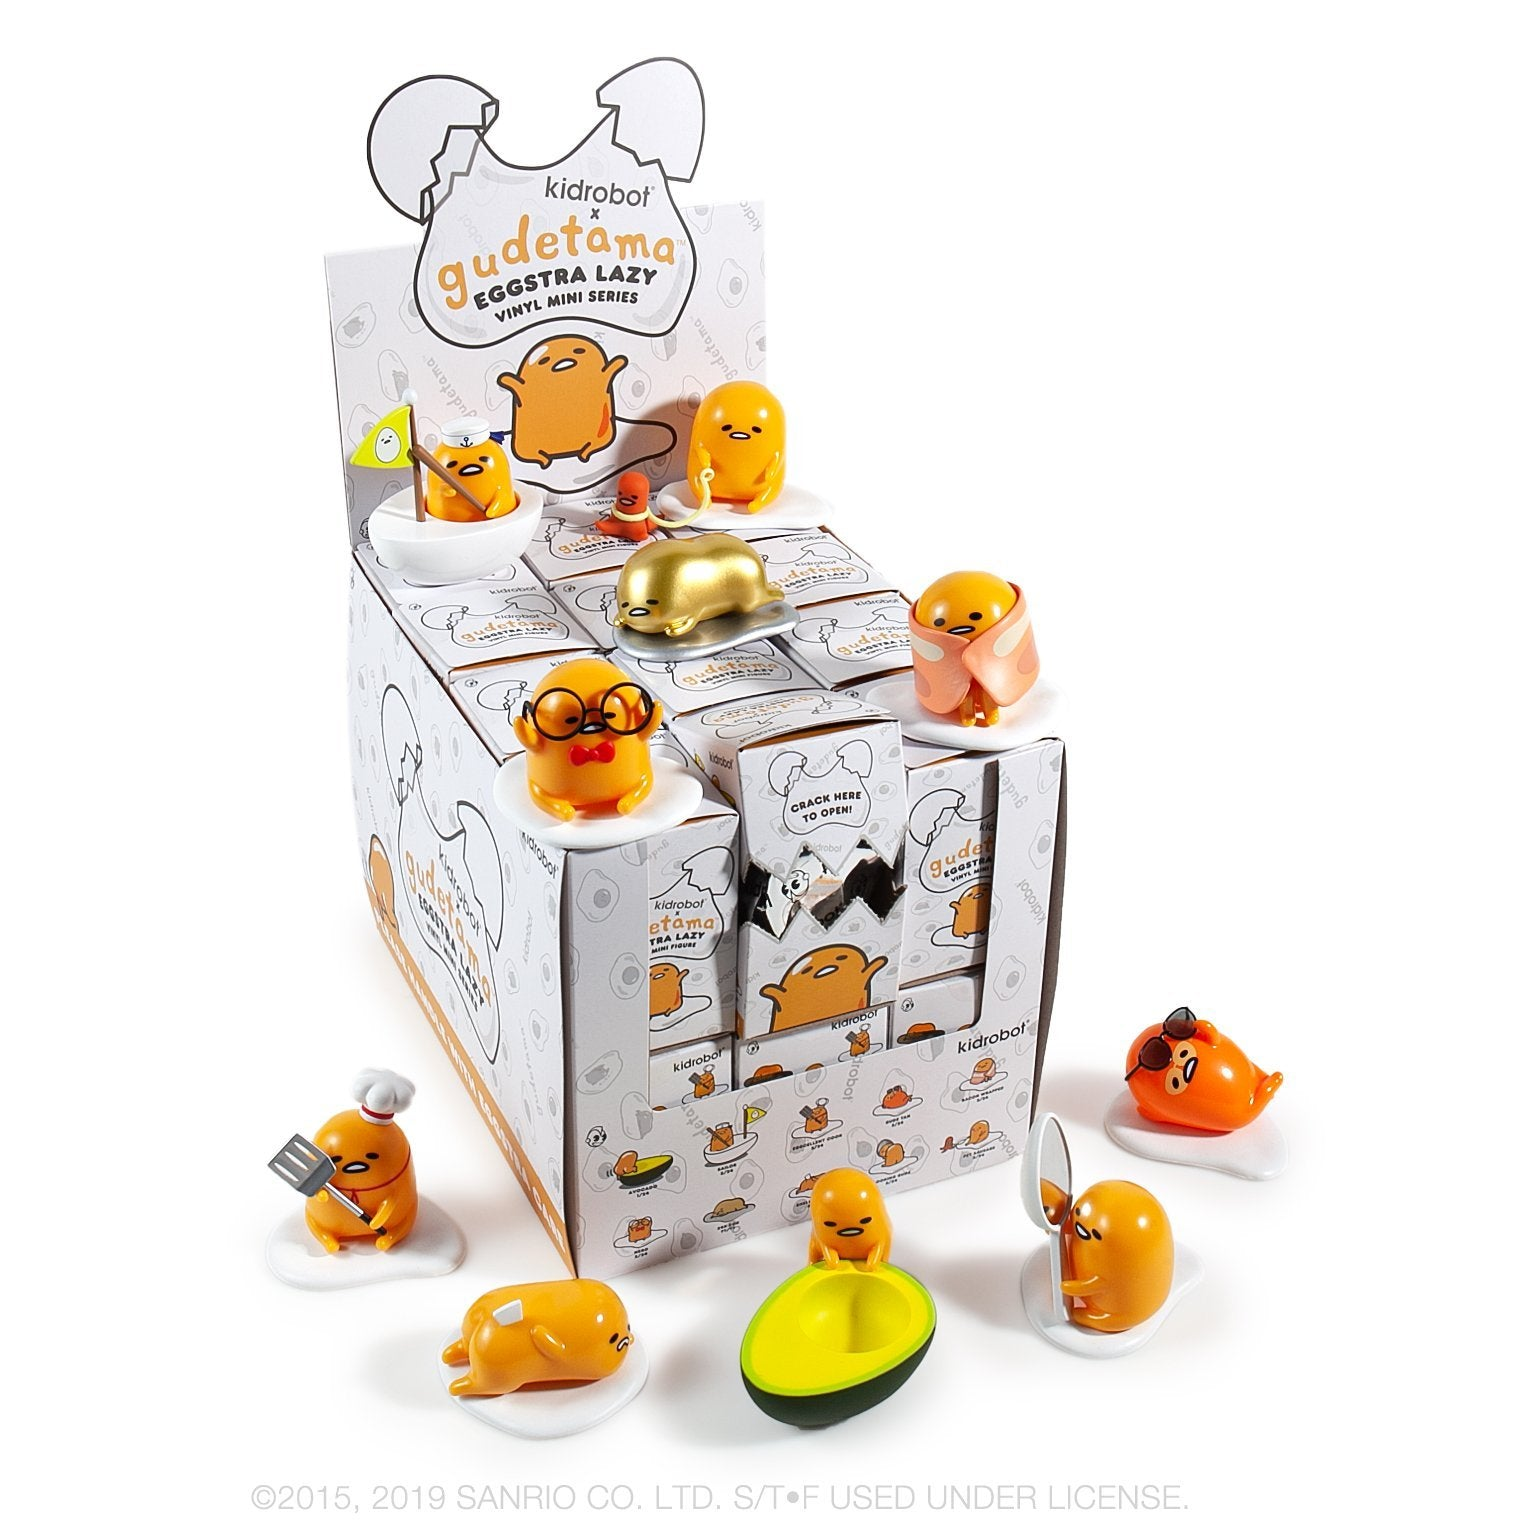 Gudetama Eggstra Lazy Vinyl Mini Figure Series by Kidrobot - Kidrobot